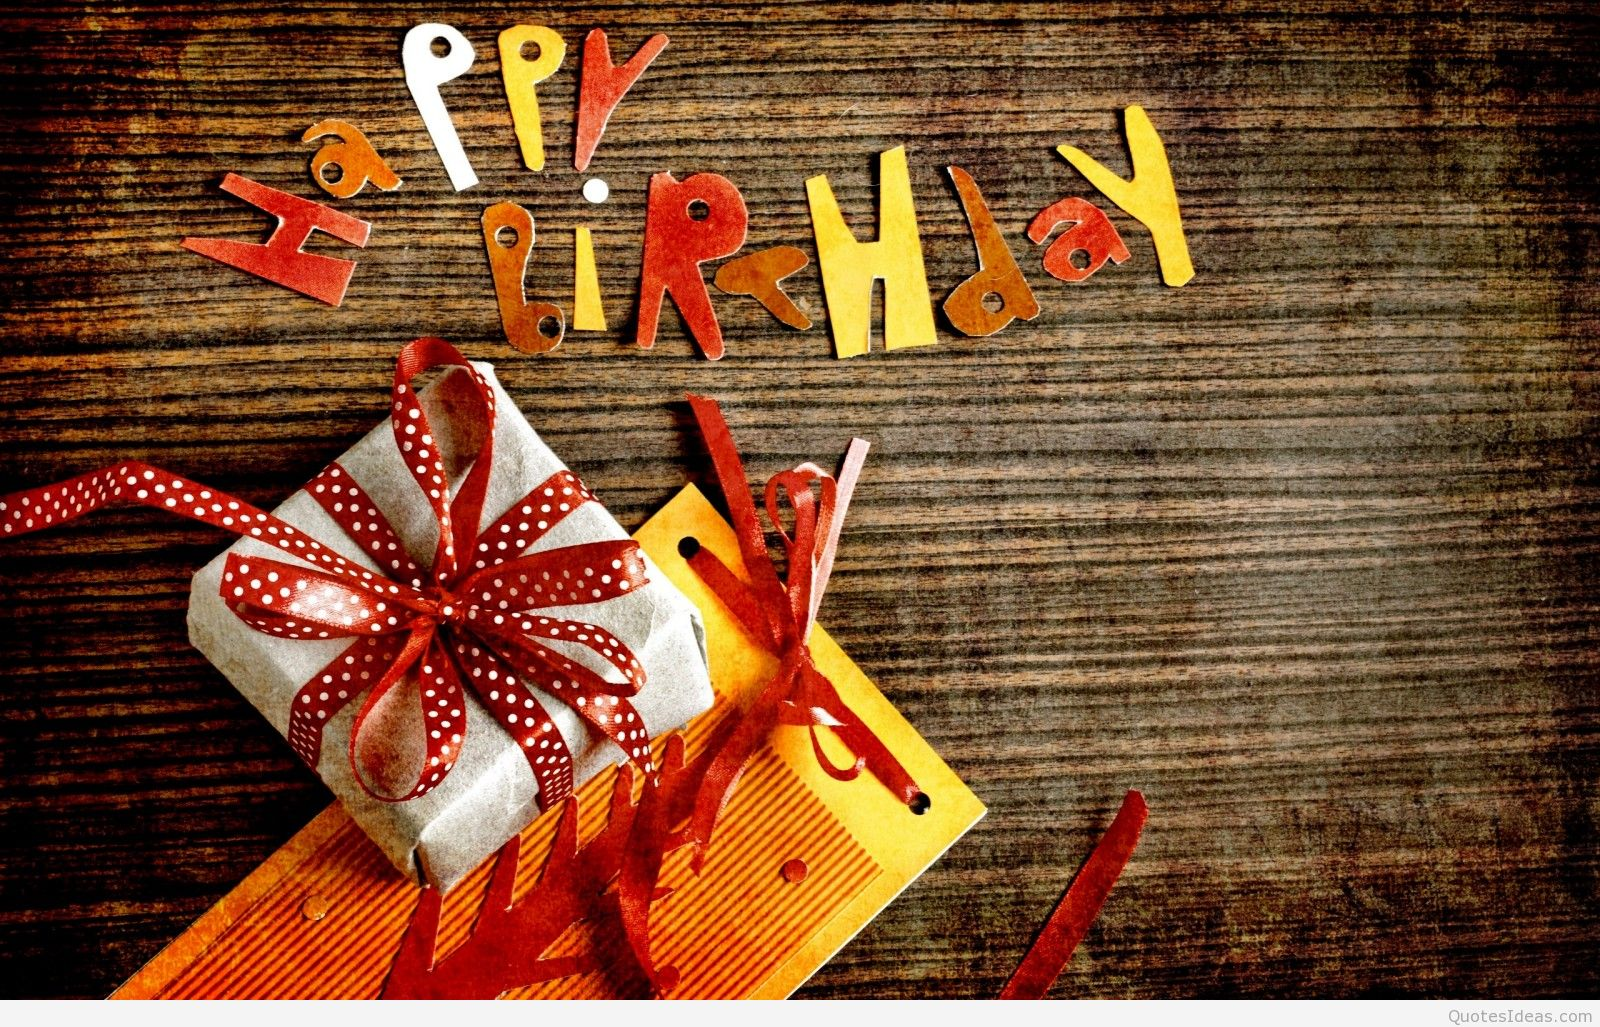 birthday hd ; Awesome-Happy-birthday-hd-wallpaper